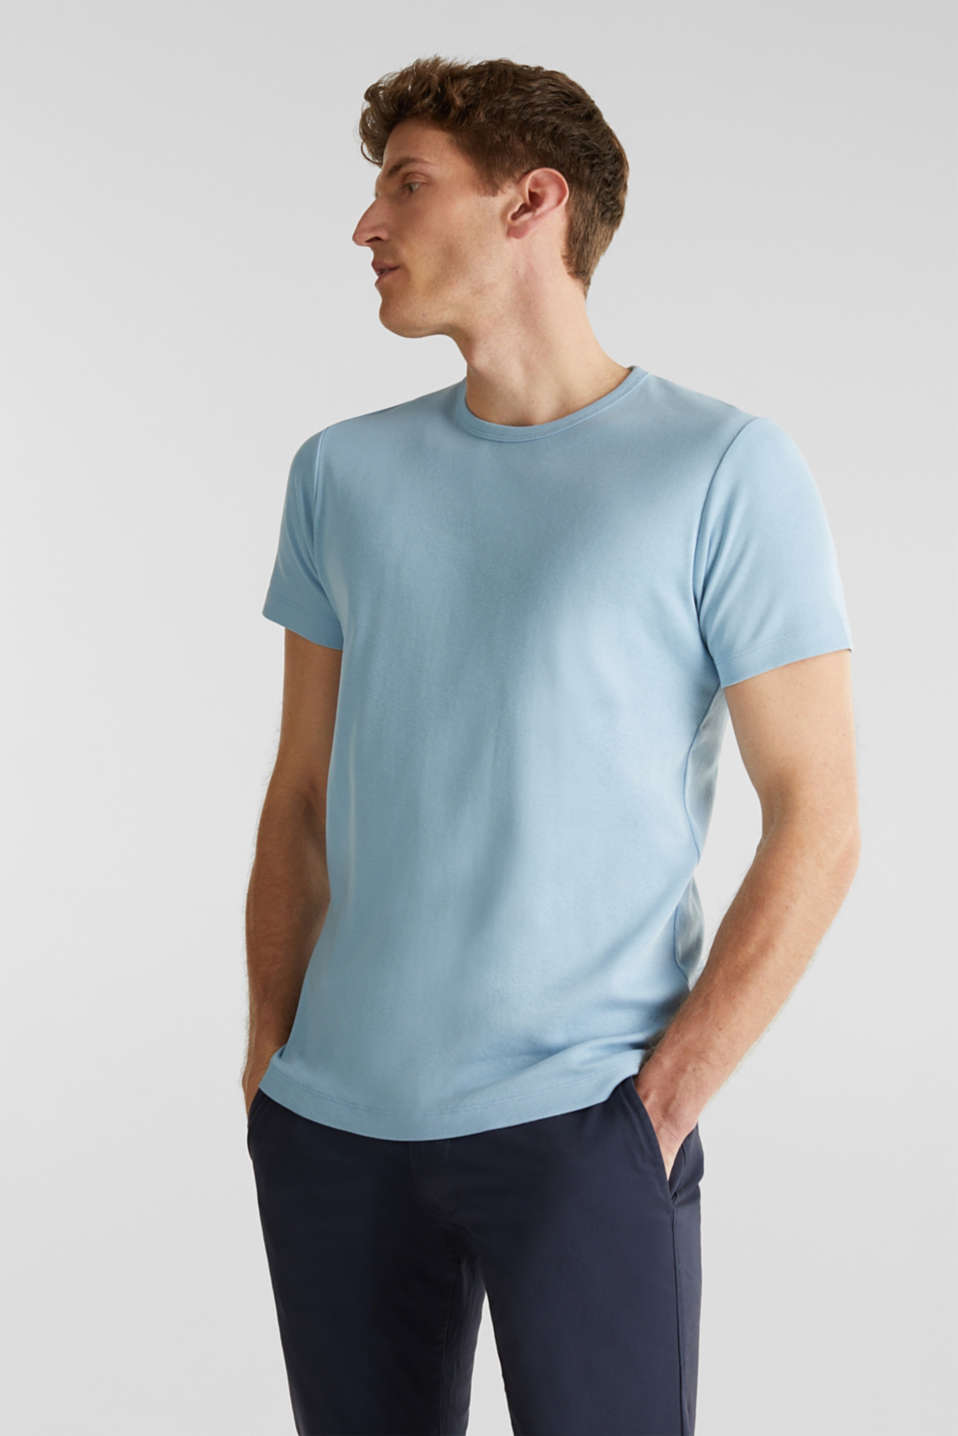 Ribbed jersey top made of 100% cotton, LIGHT BLUE, detail image number 0